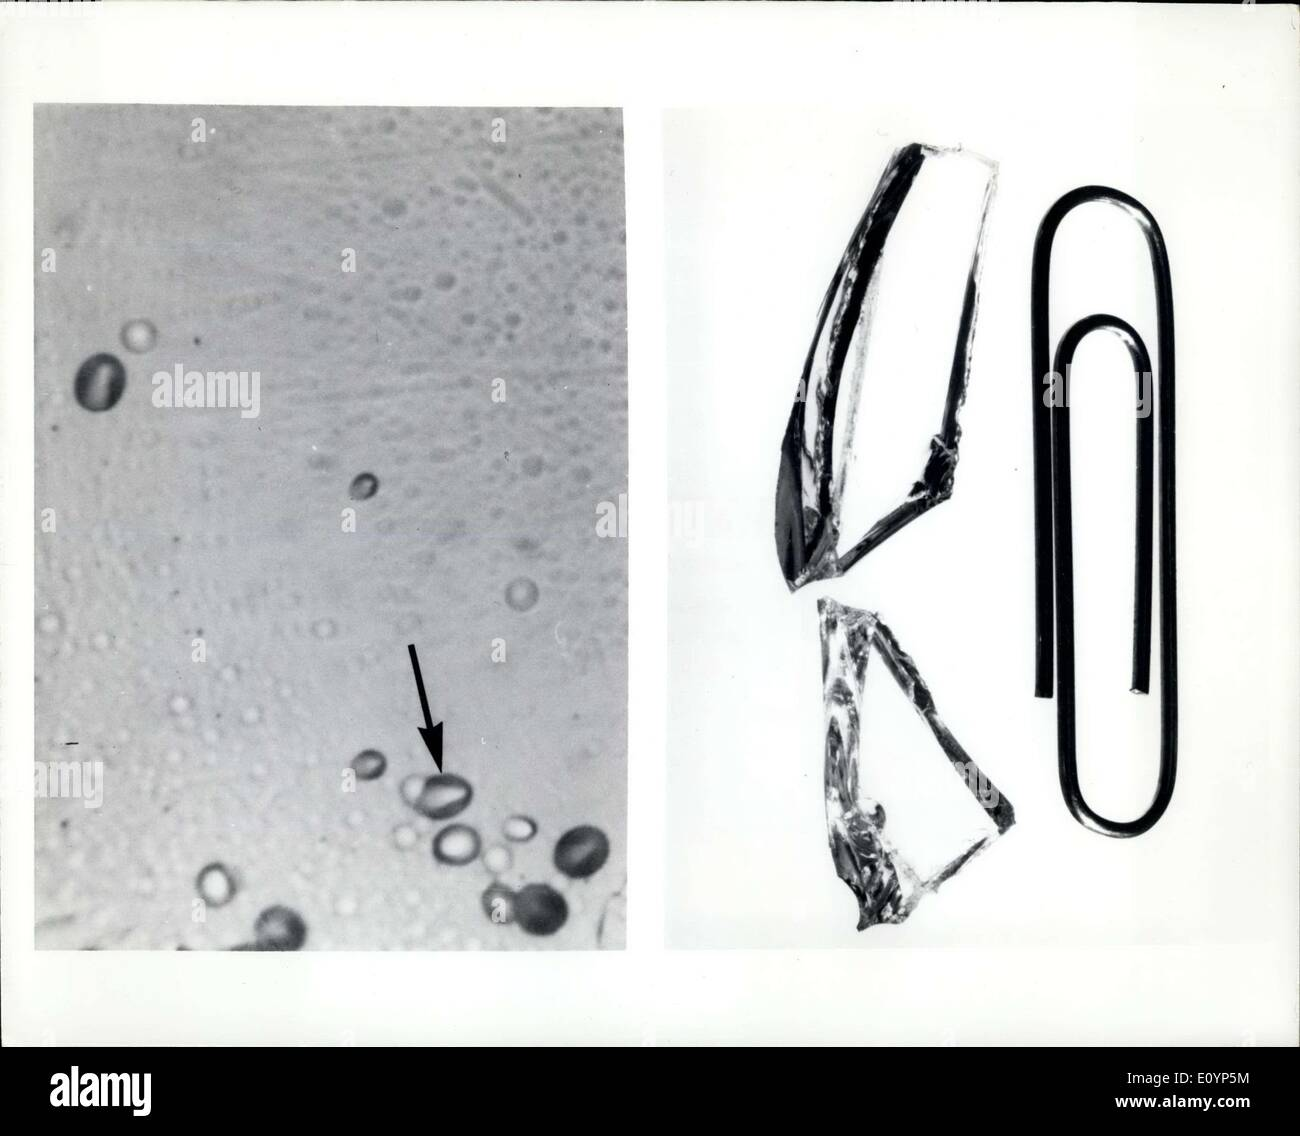 Jan. 15, 1971 - Left: Fragments from a chunk of glass that spent 31 months on a moon aboard the Surveyor III spacecraft have revealed new clues to the rate at which lunar rocks are undergoing erosion. By studying cosmic ray tracks (arrow-right) that accumulated in the glass during its stay on the moon, scientists at the General Electric Research and Development Centre have calculated that particles from space are wearing away the moon's rocks at a rate of about one layer of atoms per year. At this rate, it would take 60 million years to wear away one half inch of rock - Stock Image